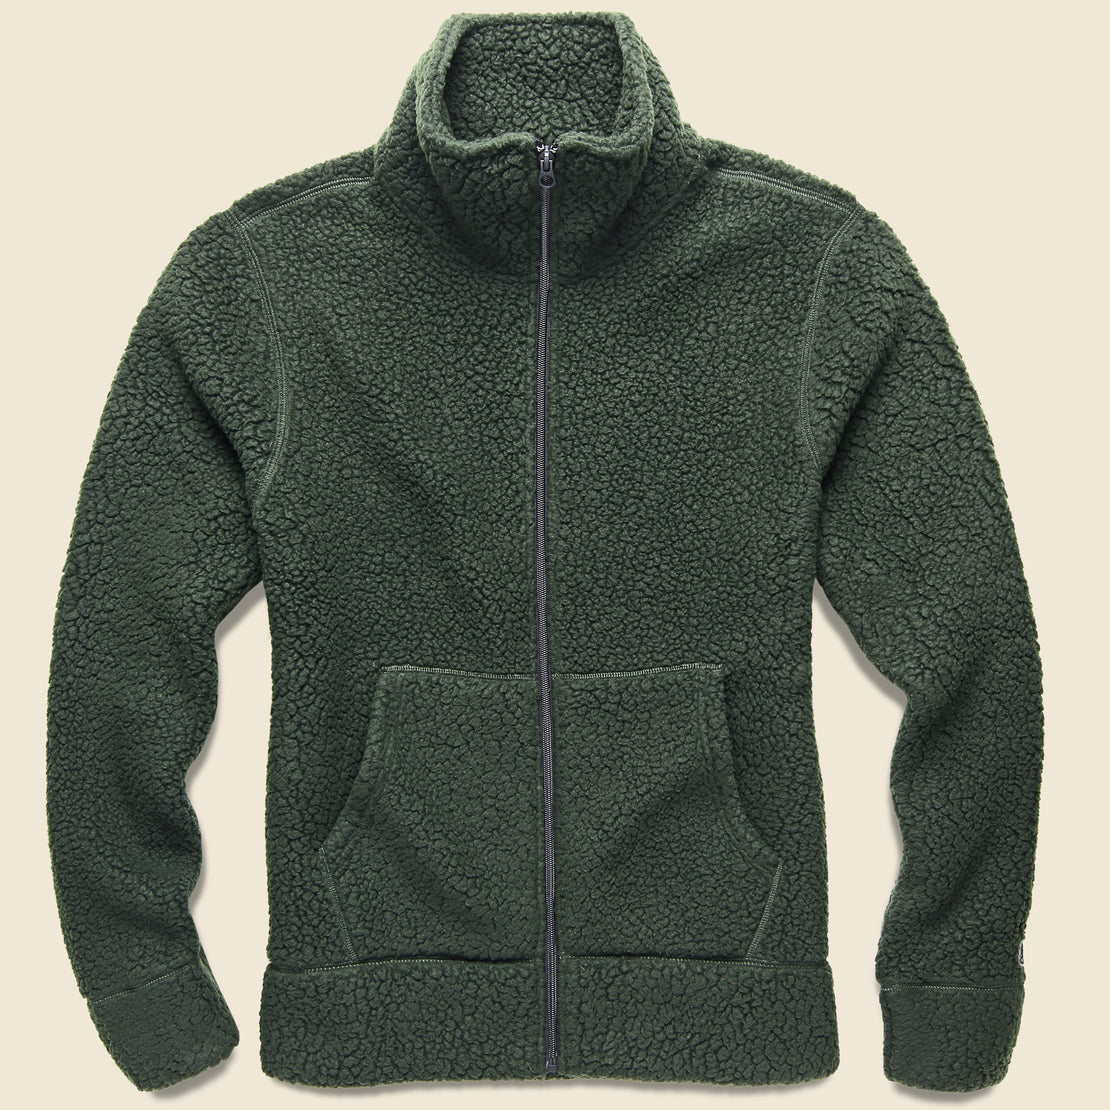 a9cac9947368 Todd Snyder Todd Snyder + Champion - Sherpa Jacket - Olive ...